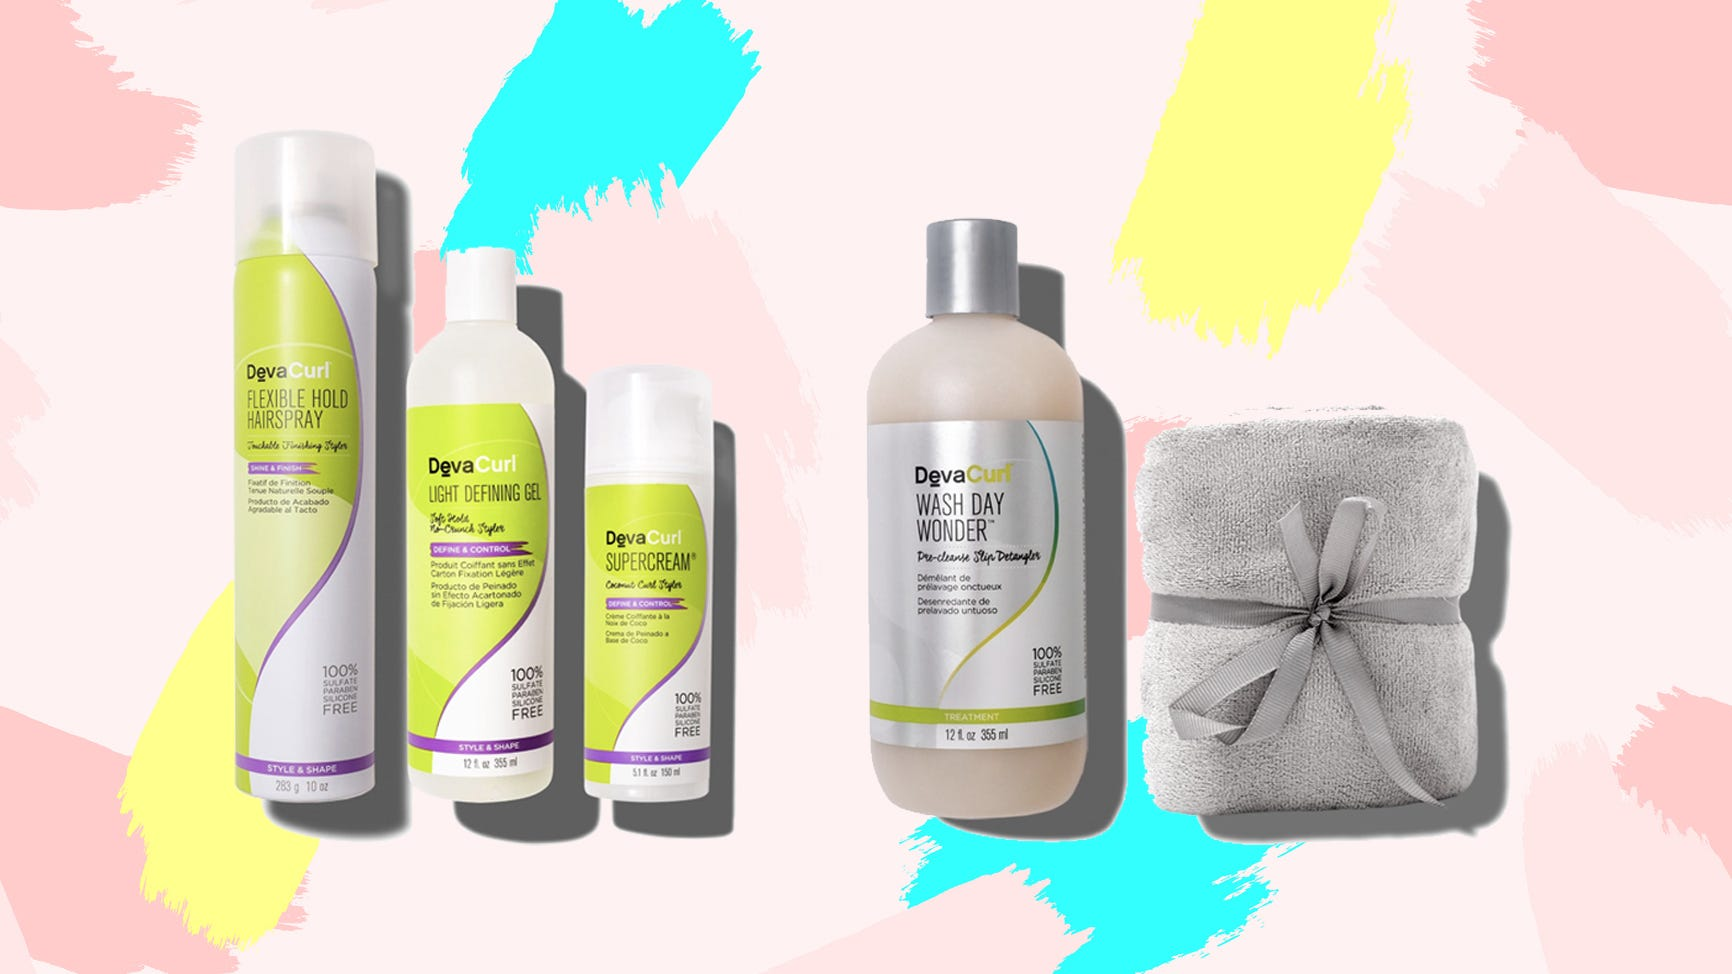 Our favorite DevaCurl hair products are on sale right now